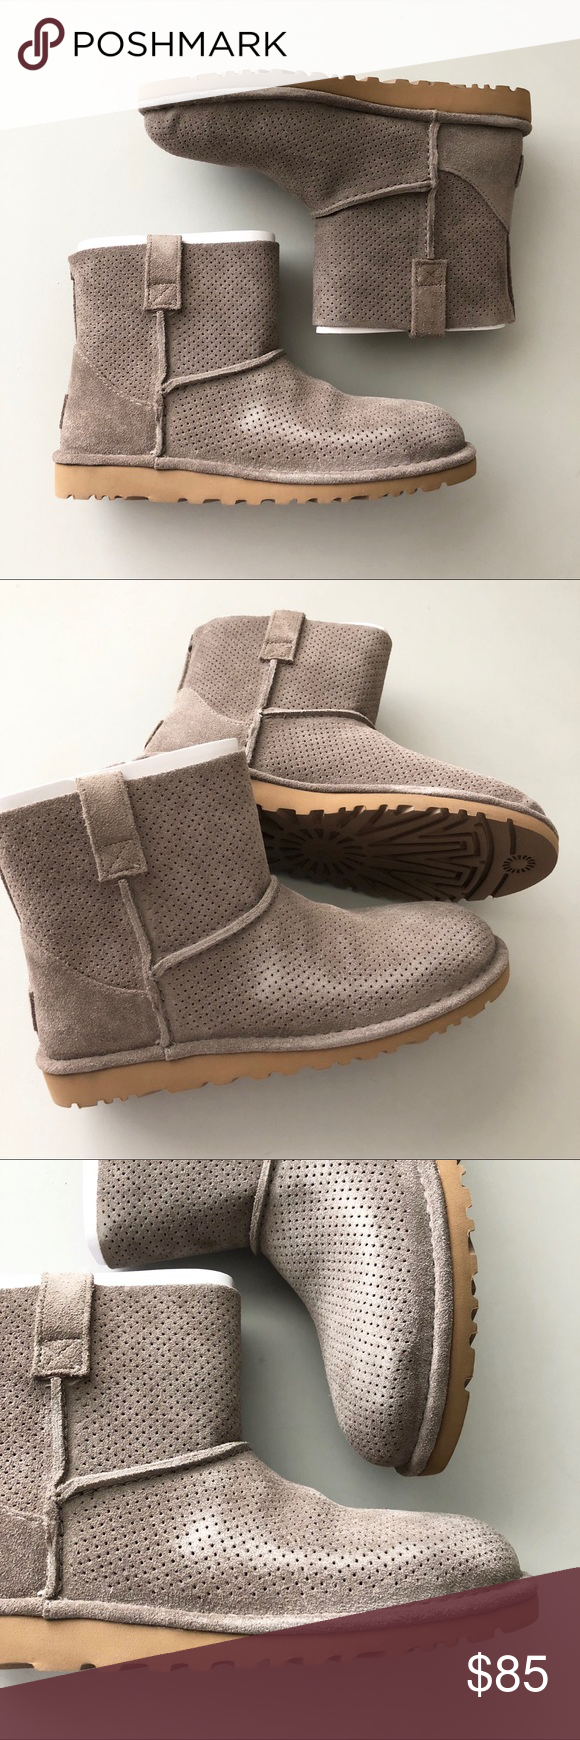 5733d1325d1 UGG Classic Unlined Mini Perforated Boot NWT | My Posh Picks ...